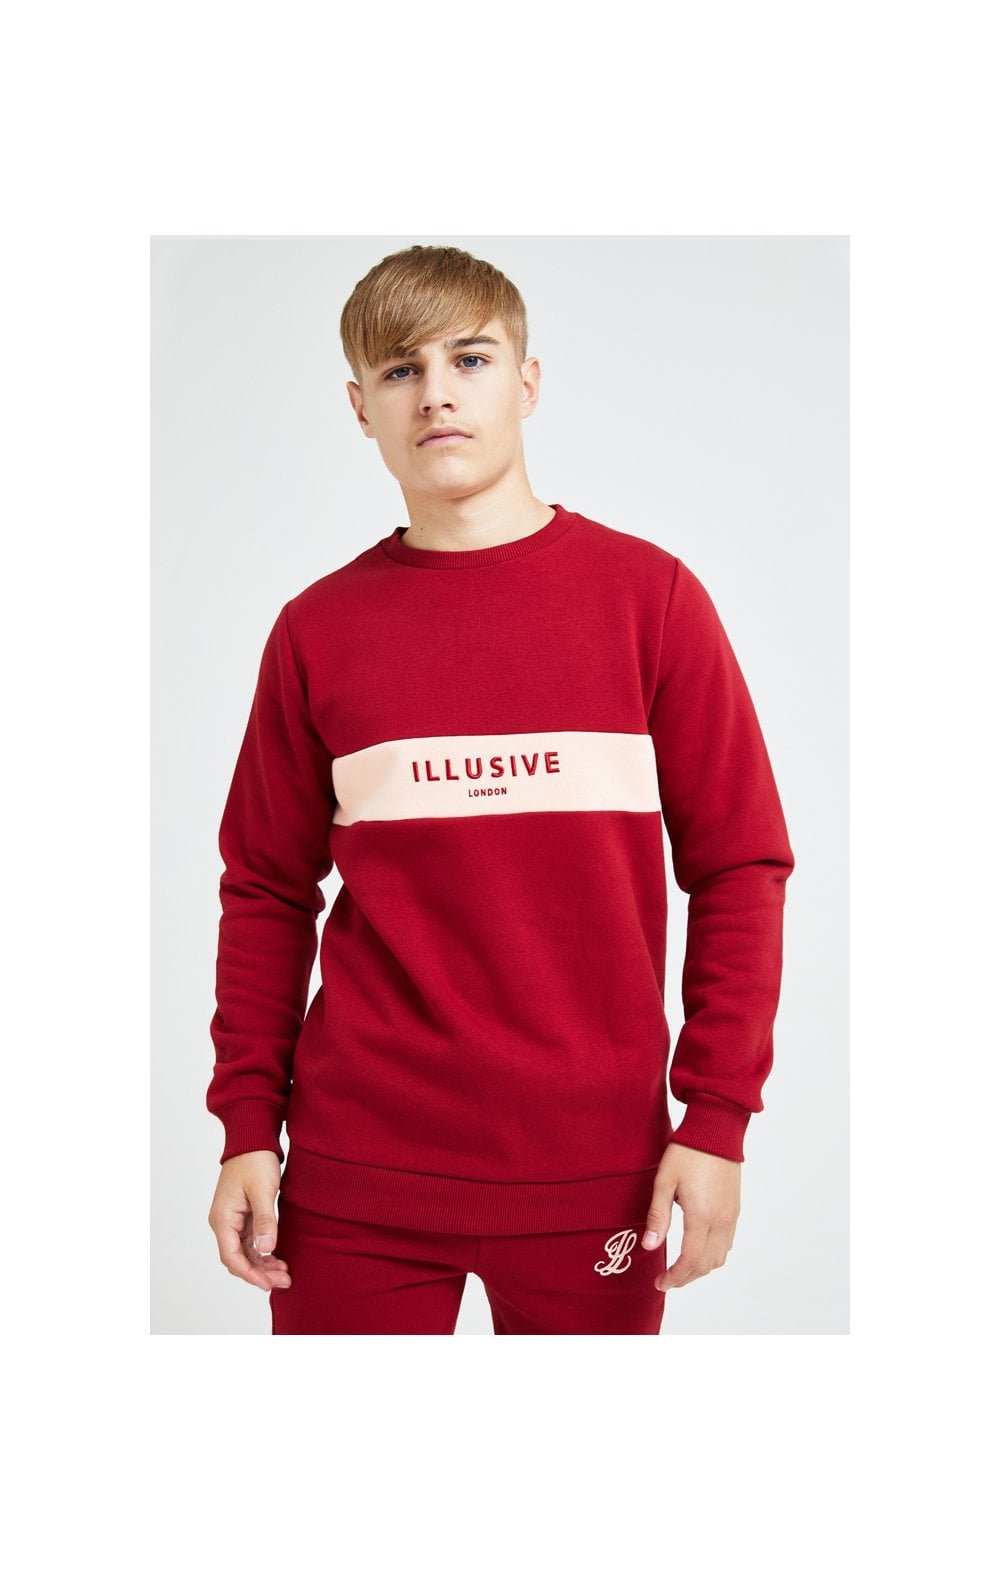 Illusive London Divergence Crew Sweater - Red & Pink (1)